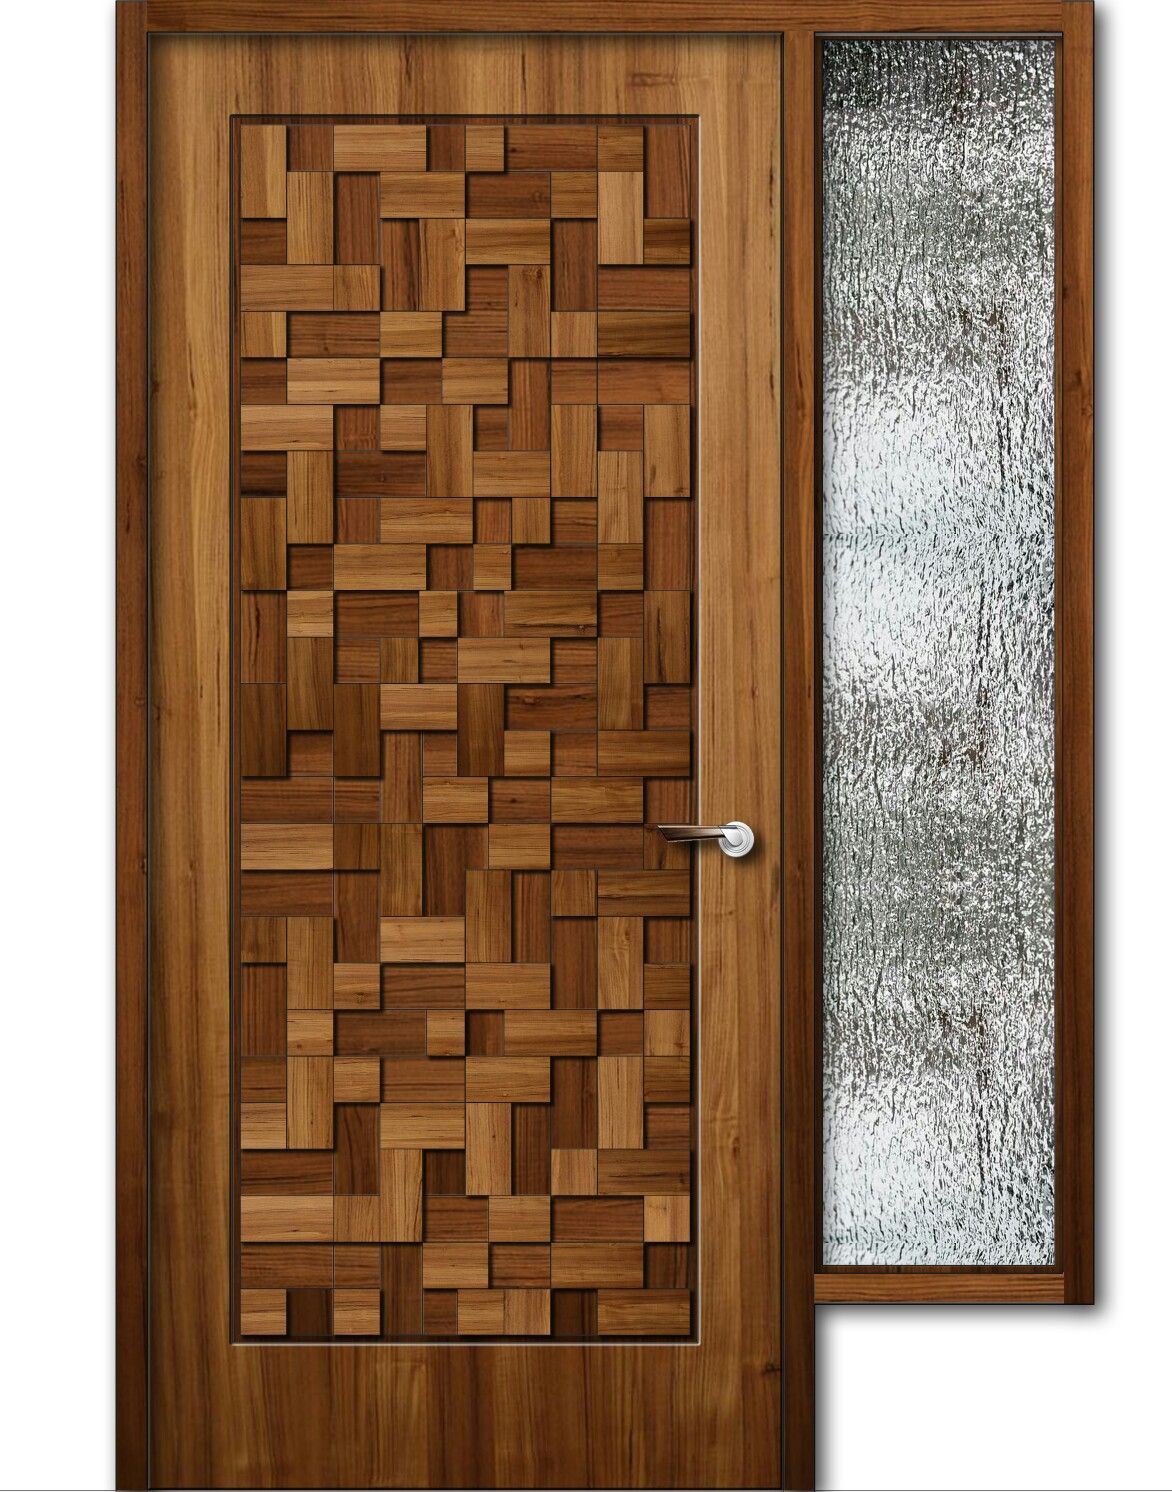 Teak wood finish wooden door with window 8feet height for Wooden door designs pictures